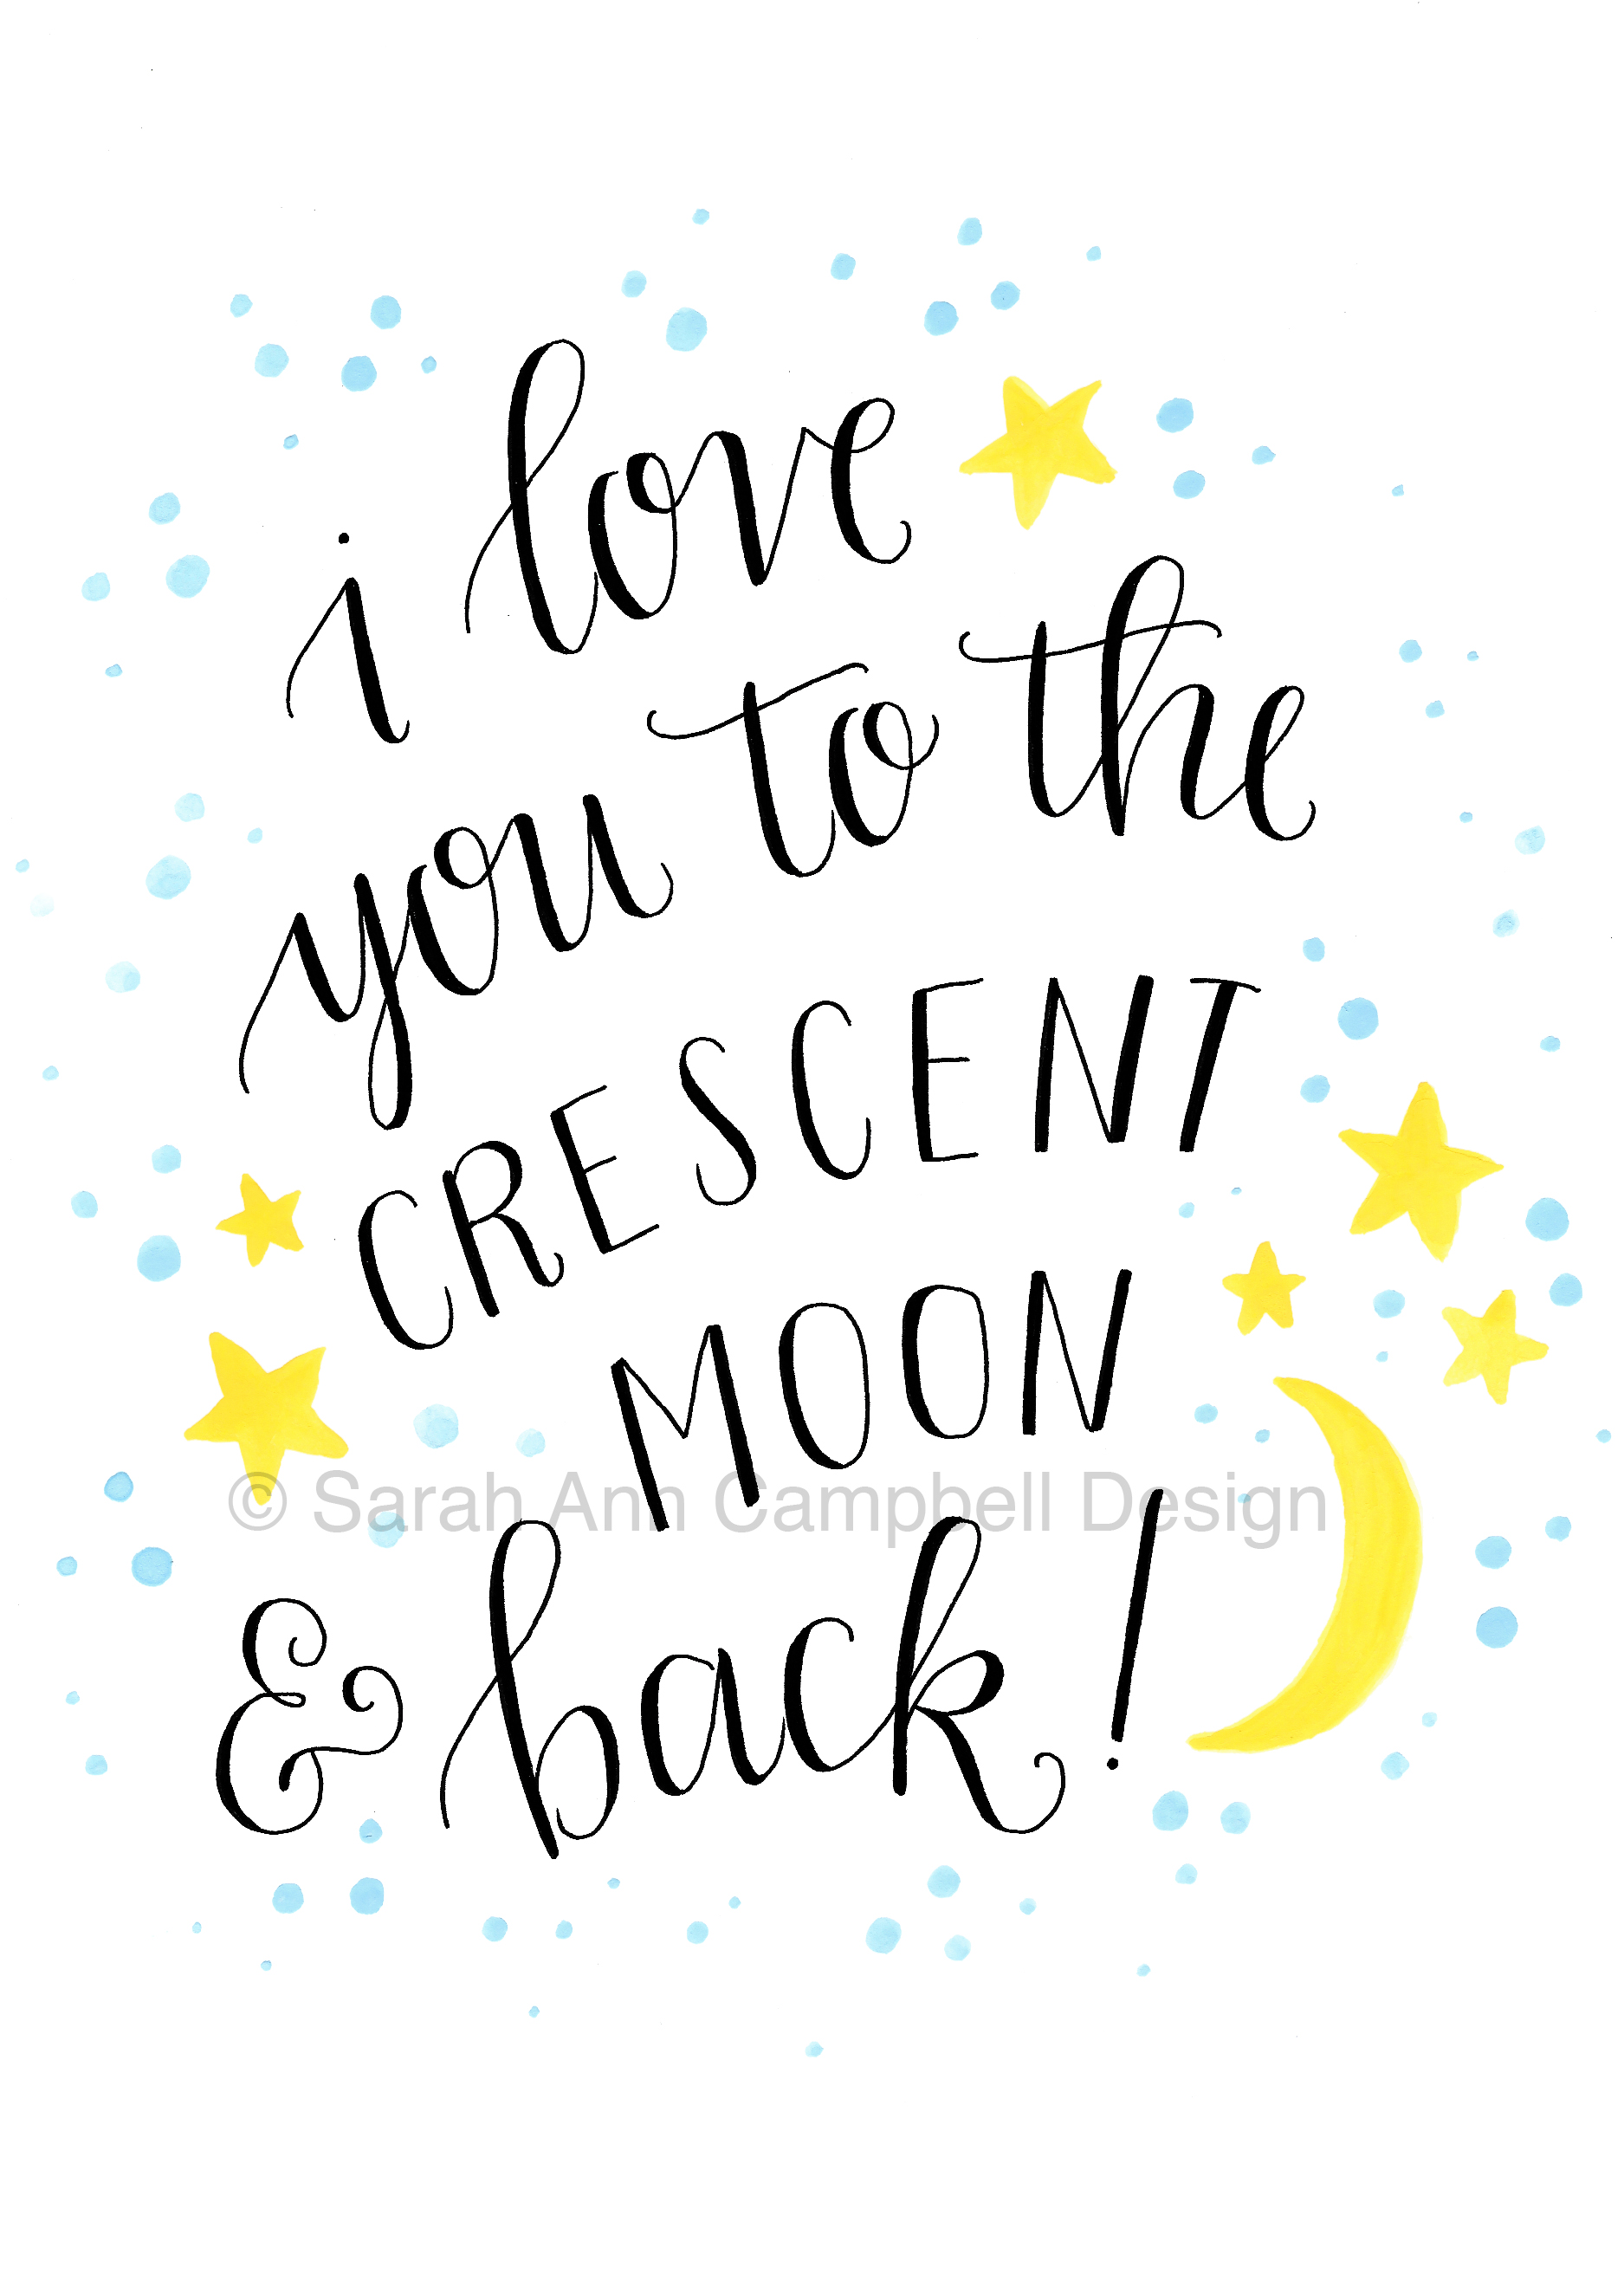 Quote I Love You To The Moon And Back Tri Delta  Sarah Ann Design